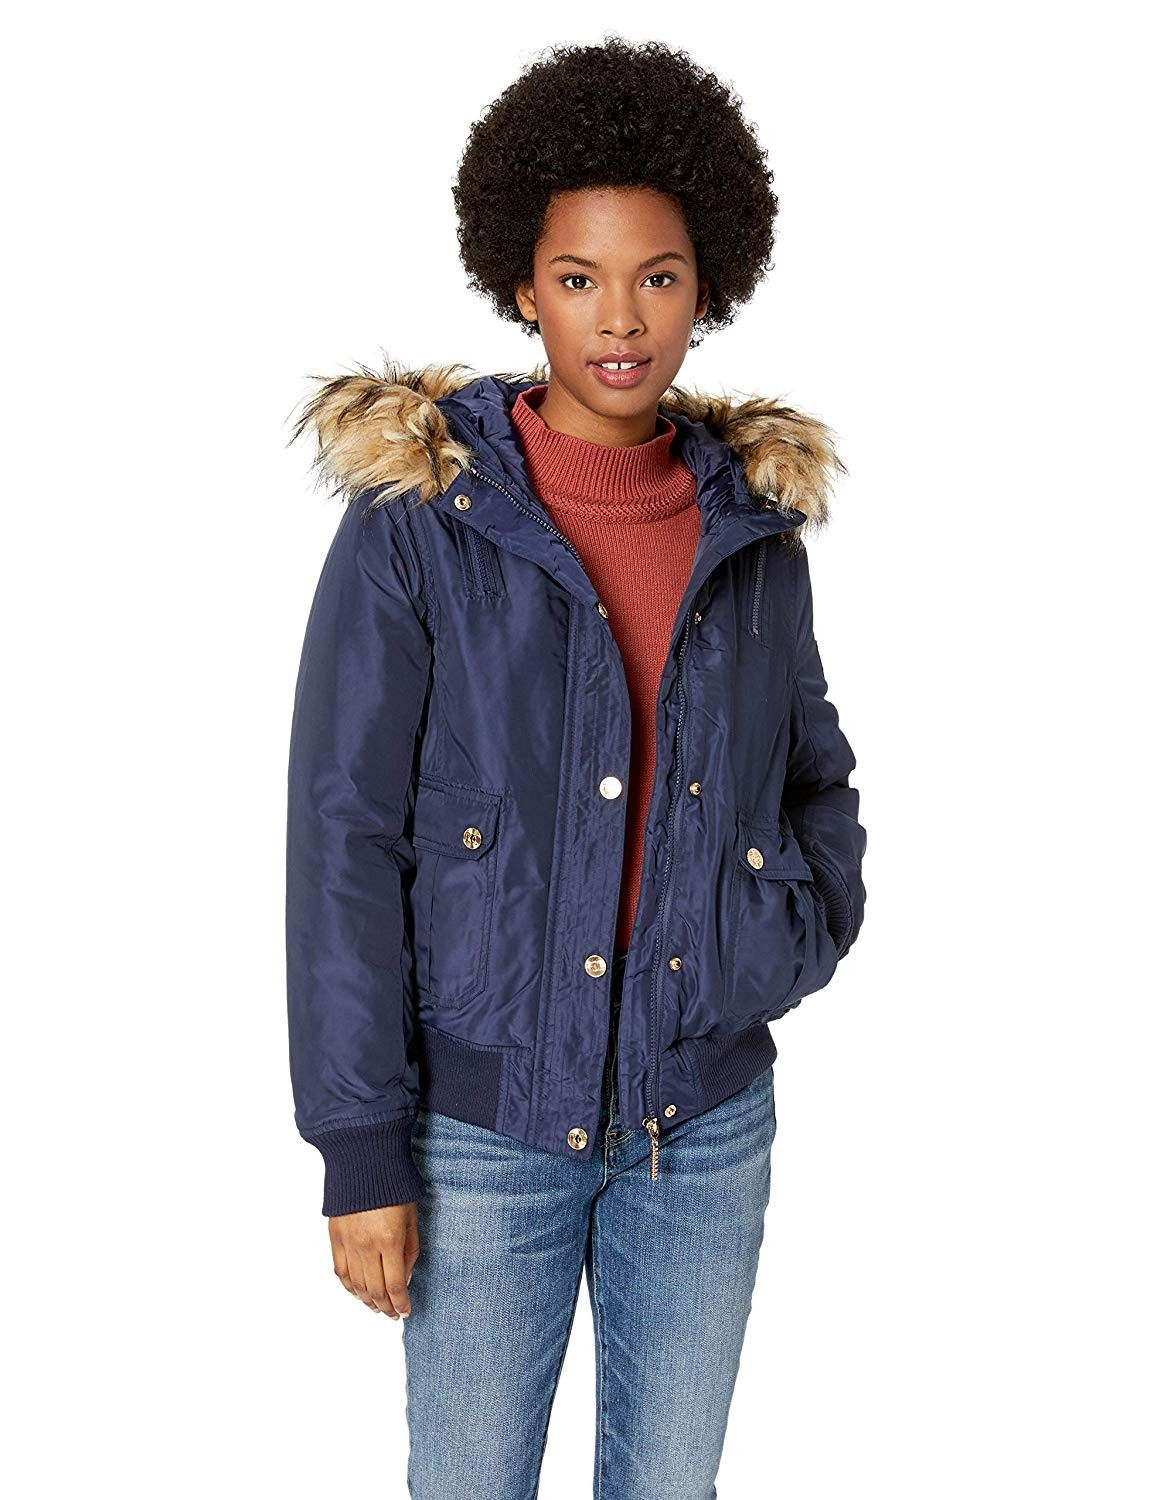 Women S Fashion Bomber Jacket Navy Cd18c0552kg Size Small Womens Outdoor Clothing Fashion Outdoor Outfit [ 1500 x 1154 Pixel ]